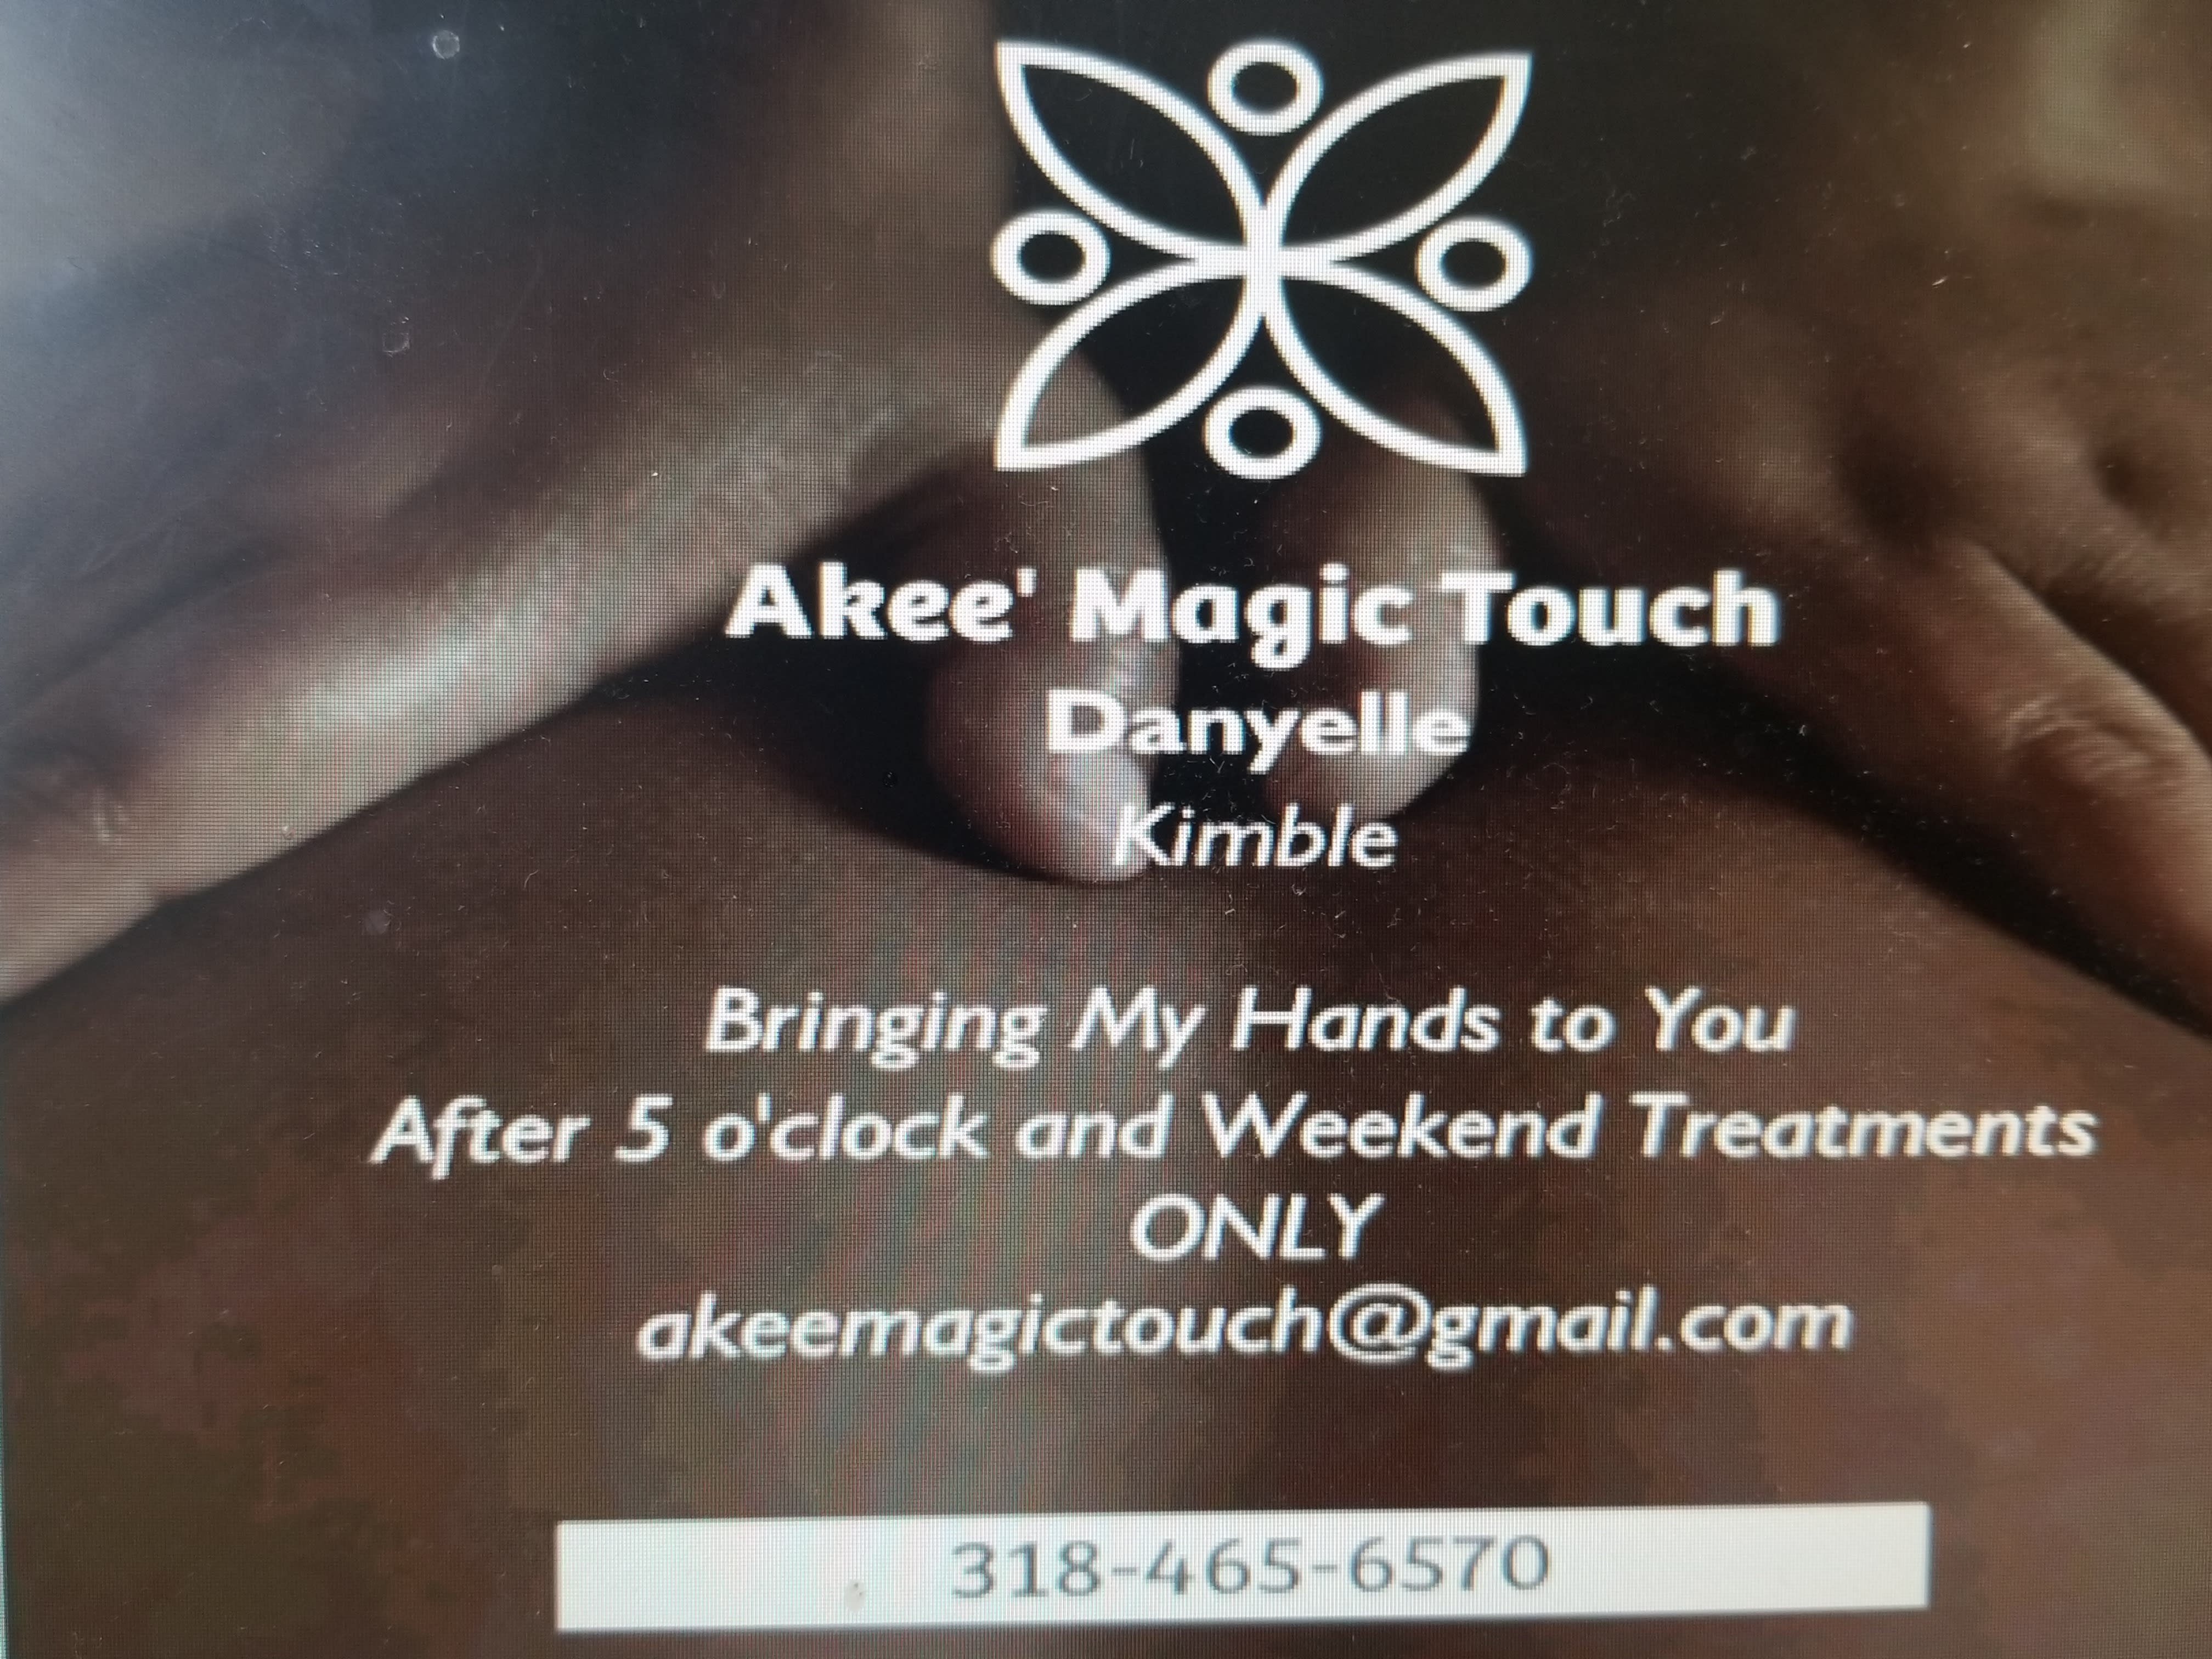 Akee' Magic Touch